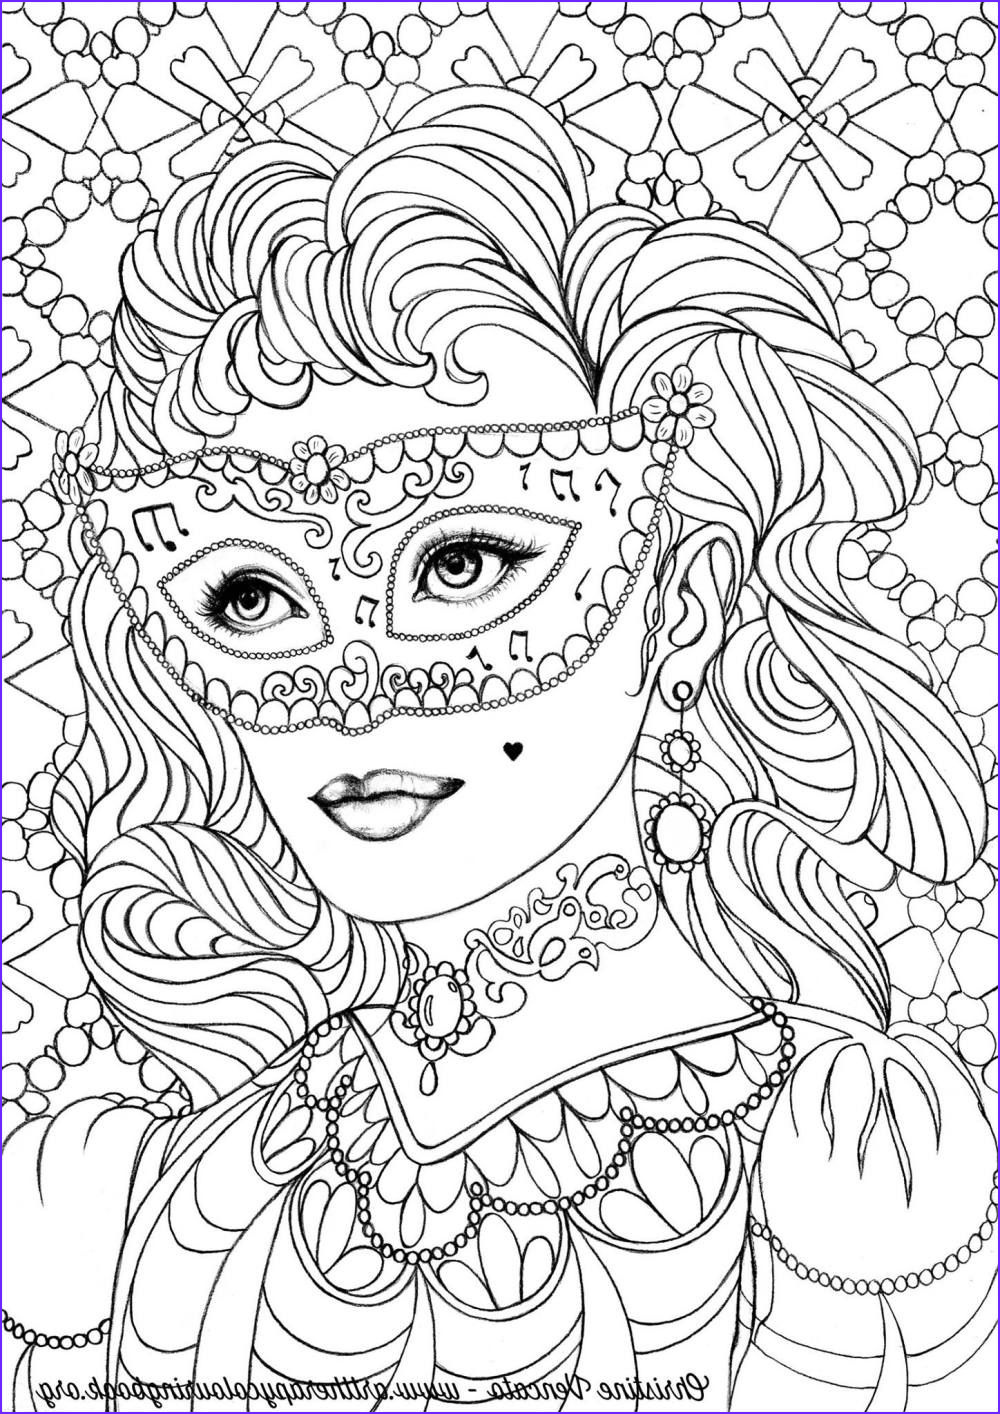 Coloring Pictures for Adults Beautiful Photos Free Coloring Page From Adult Coloring Worldwide Art by